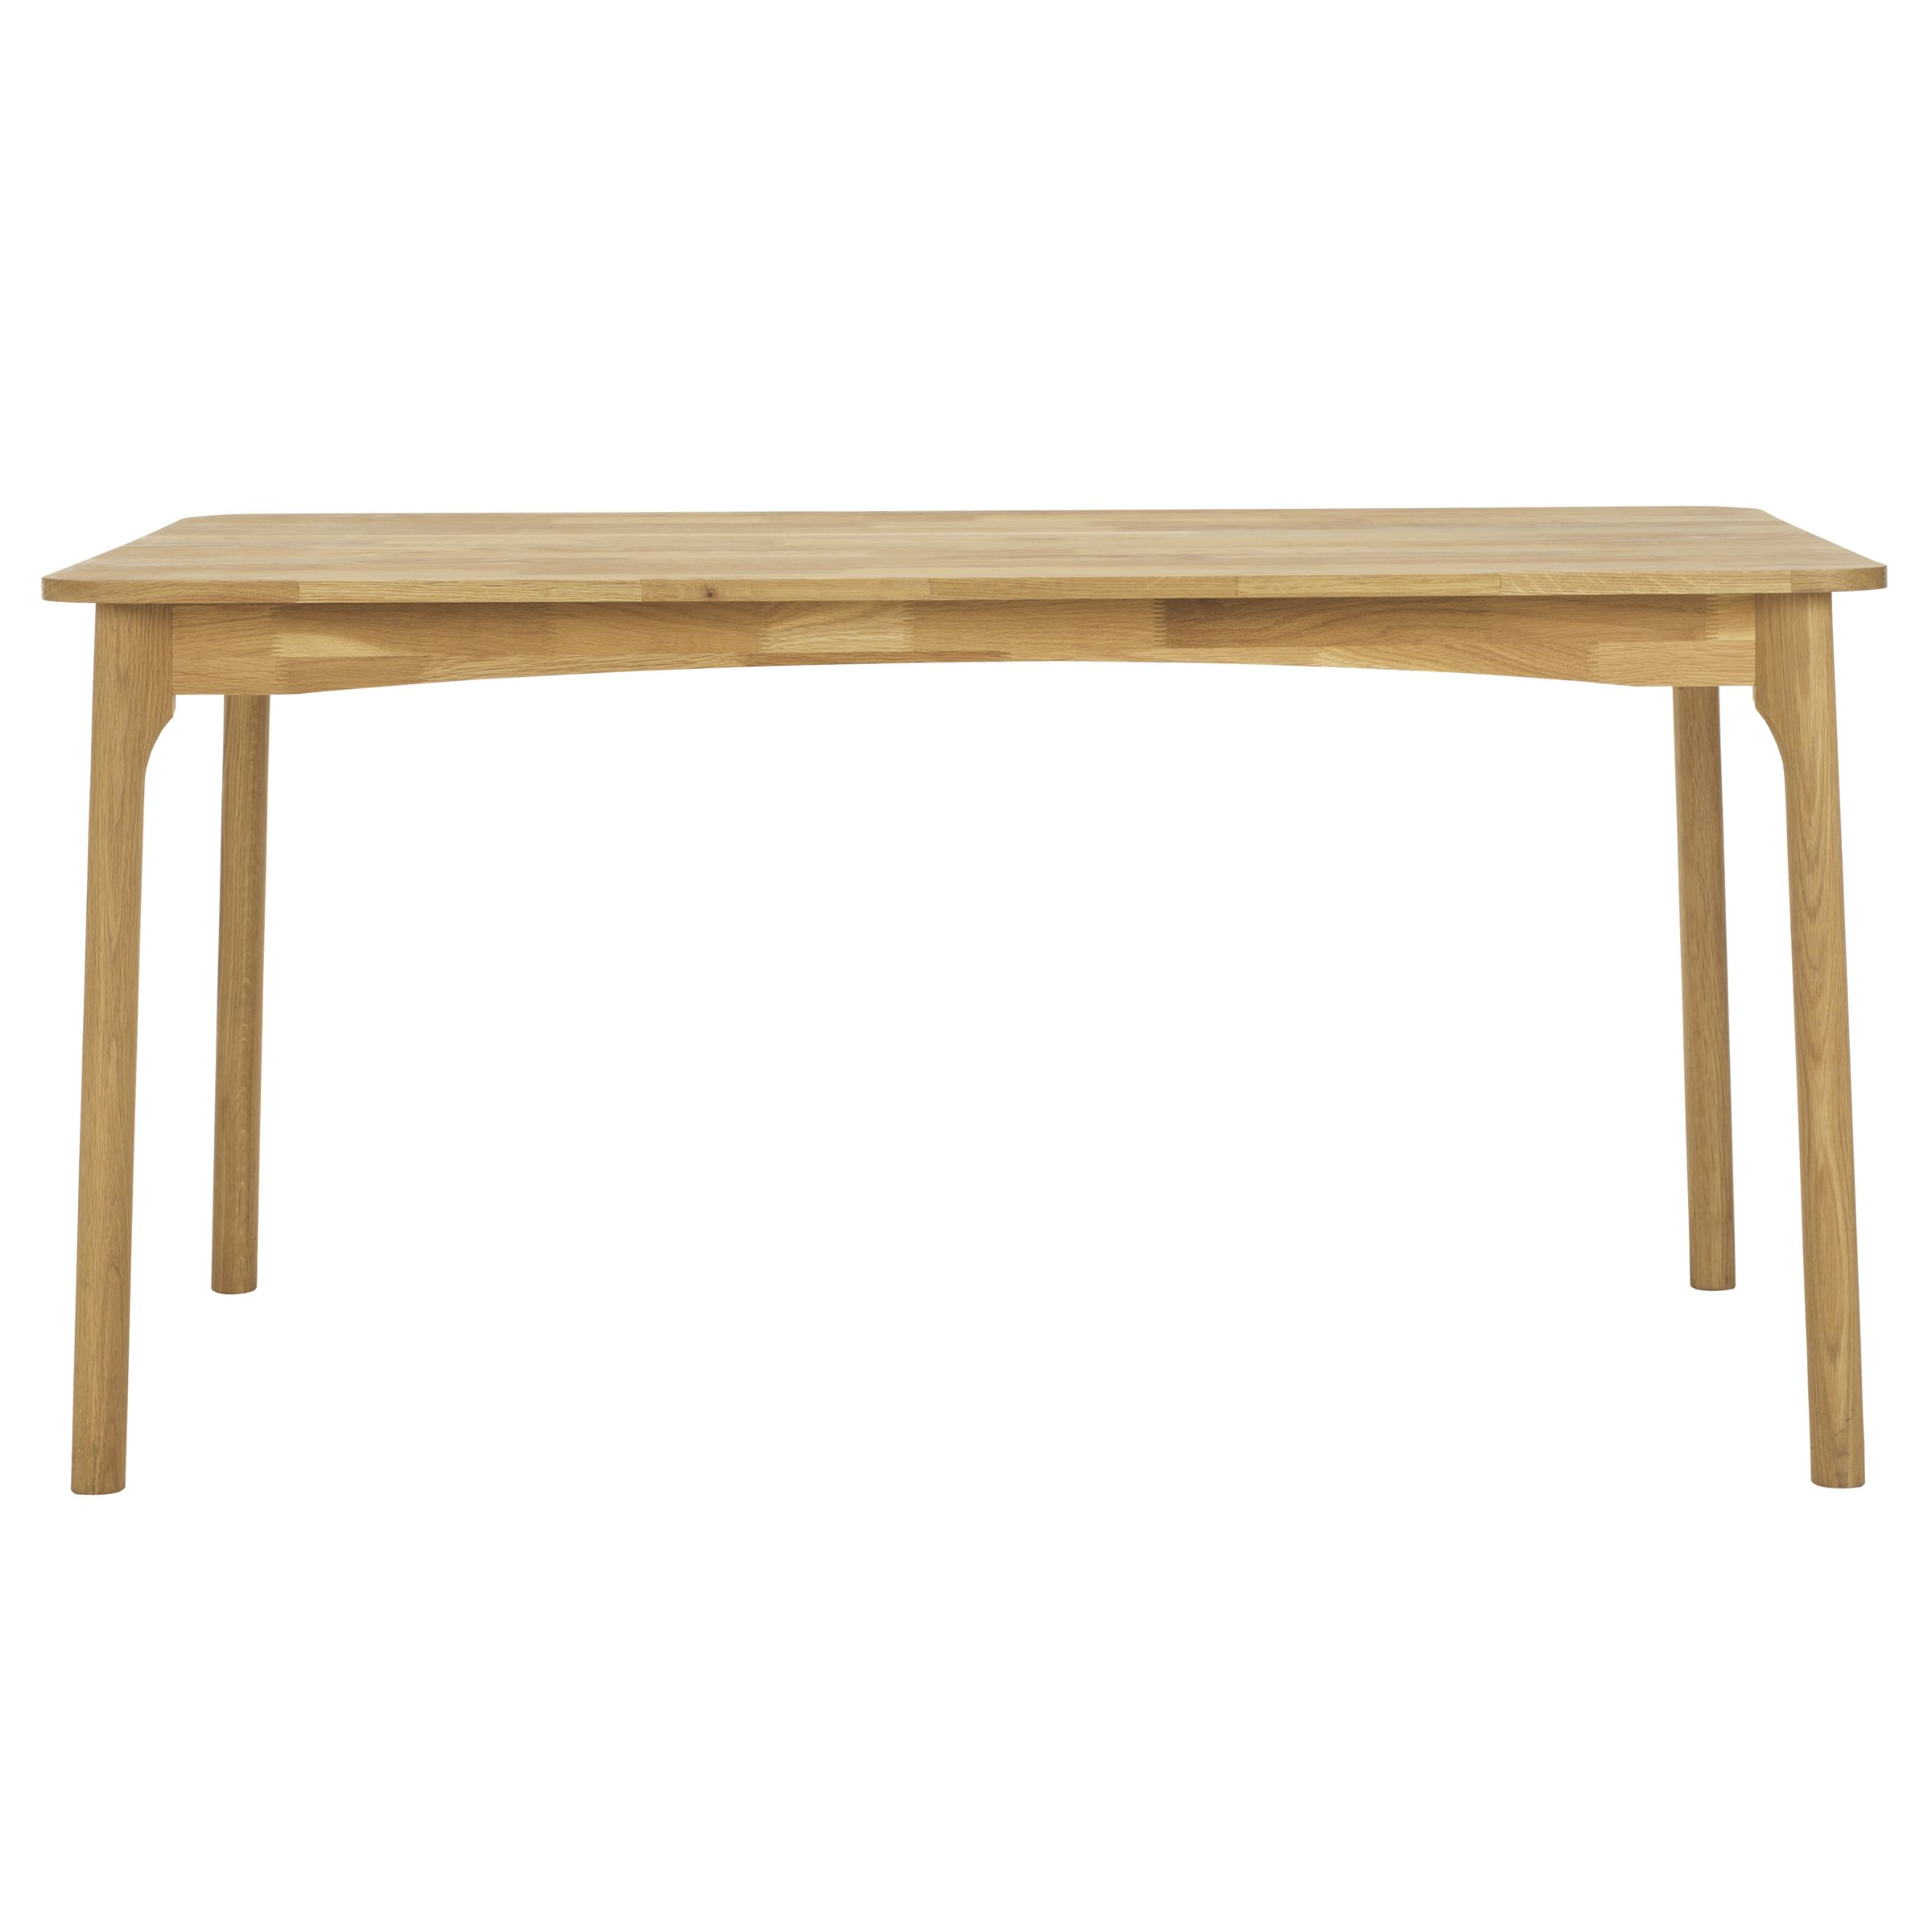 John Lewis Ken Dining Table Oak review compare prices  : 231240700 from www.comparestoreprices.co.uk size 2400 x 2400 jpeg 125kB